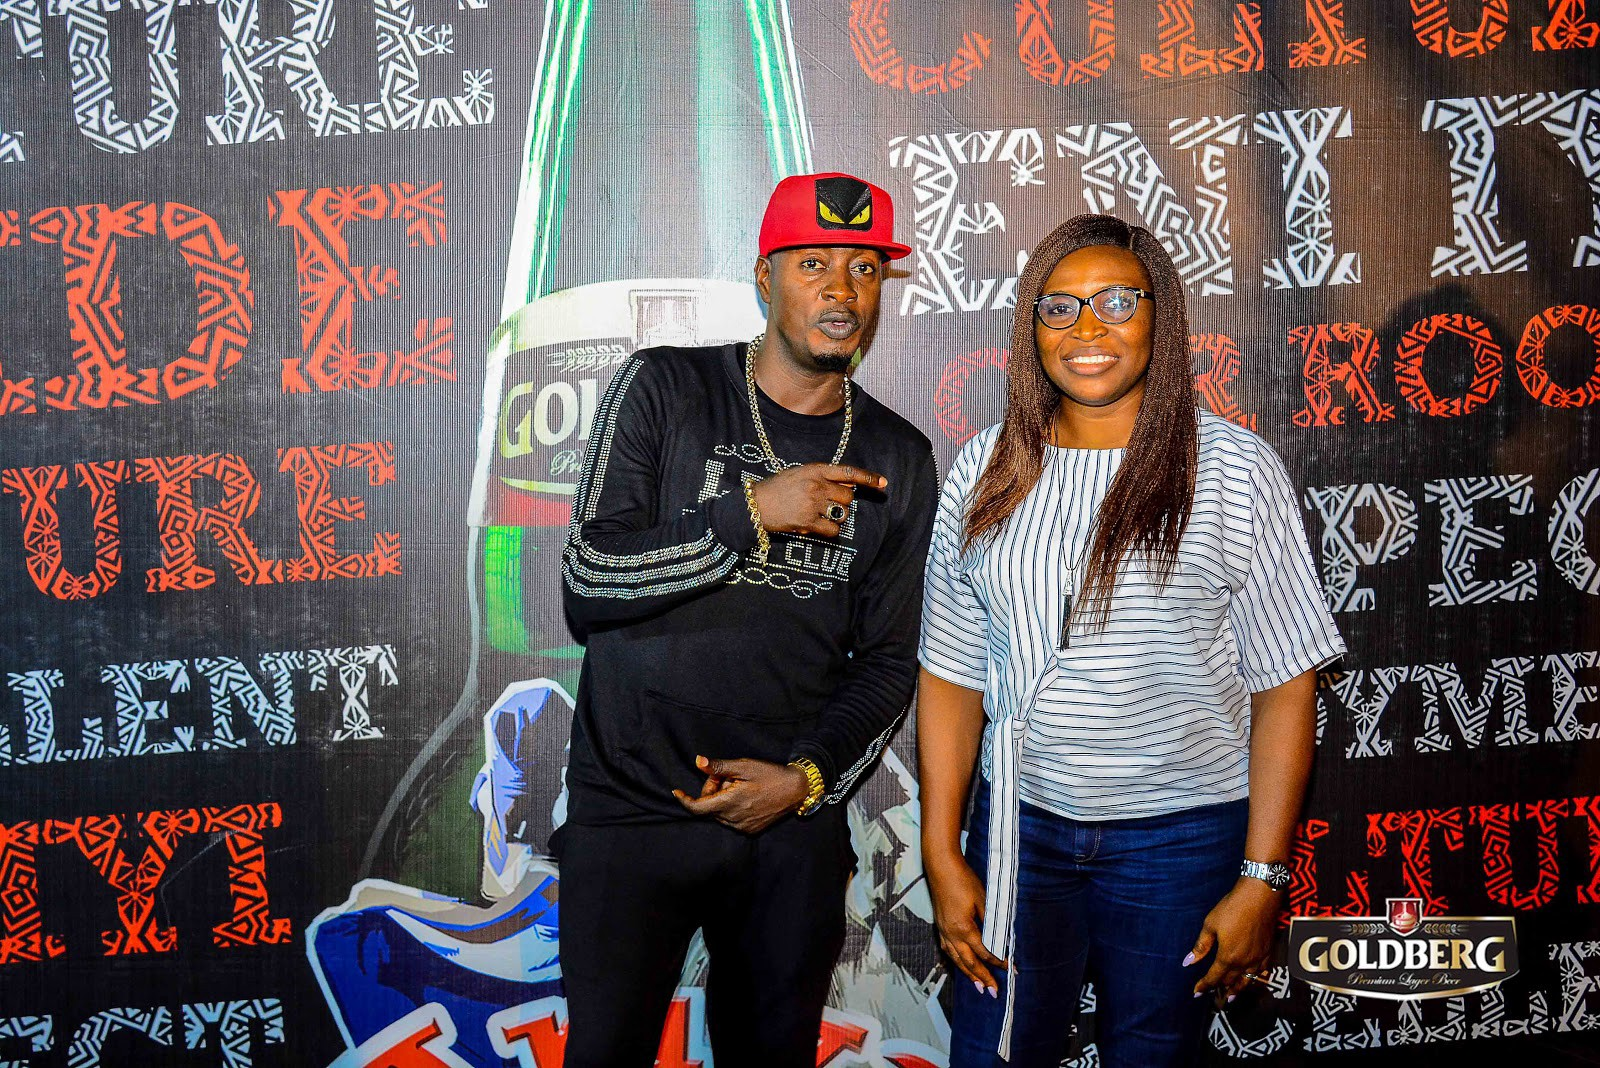 Taye Currency Makes Surprise Appearance At Ariya Repete Selection Party In Ibadan (Photos) - Brand Spur